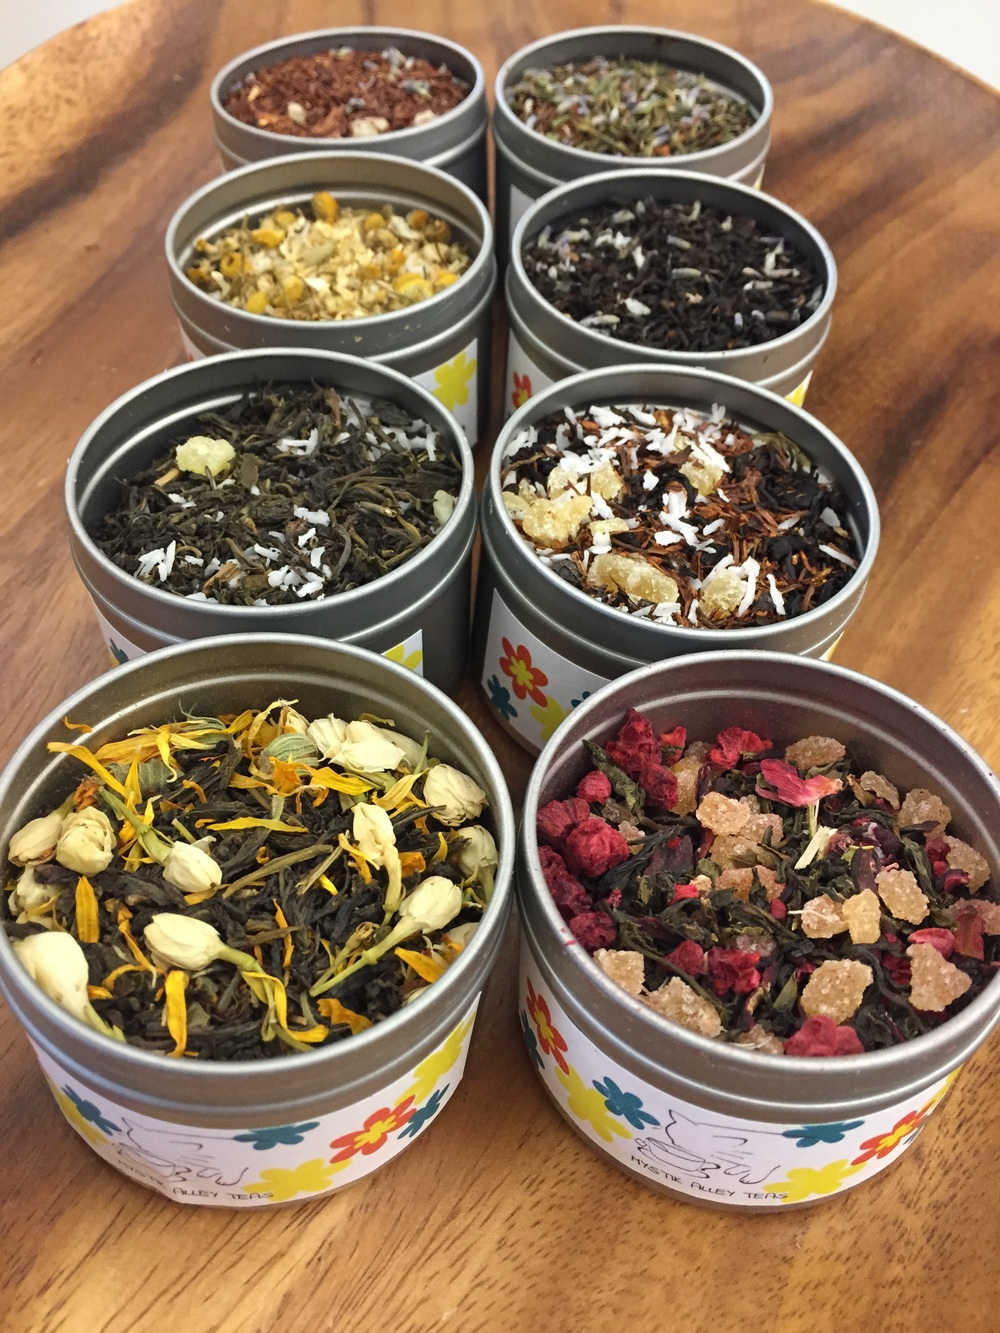 We've included a diverse range of songs for our diverse range of flavors so you are bound to find a tune that's quite literally your cup of tea!